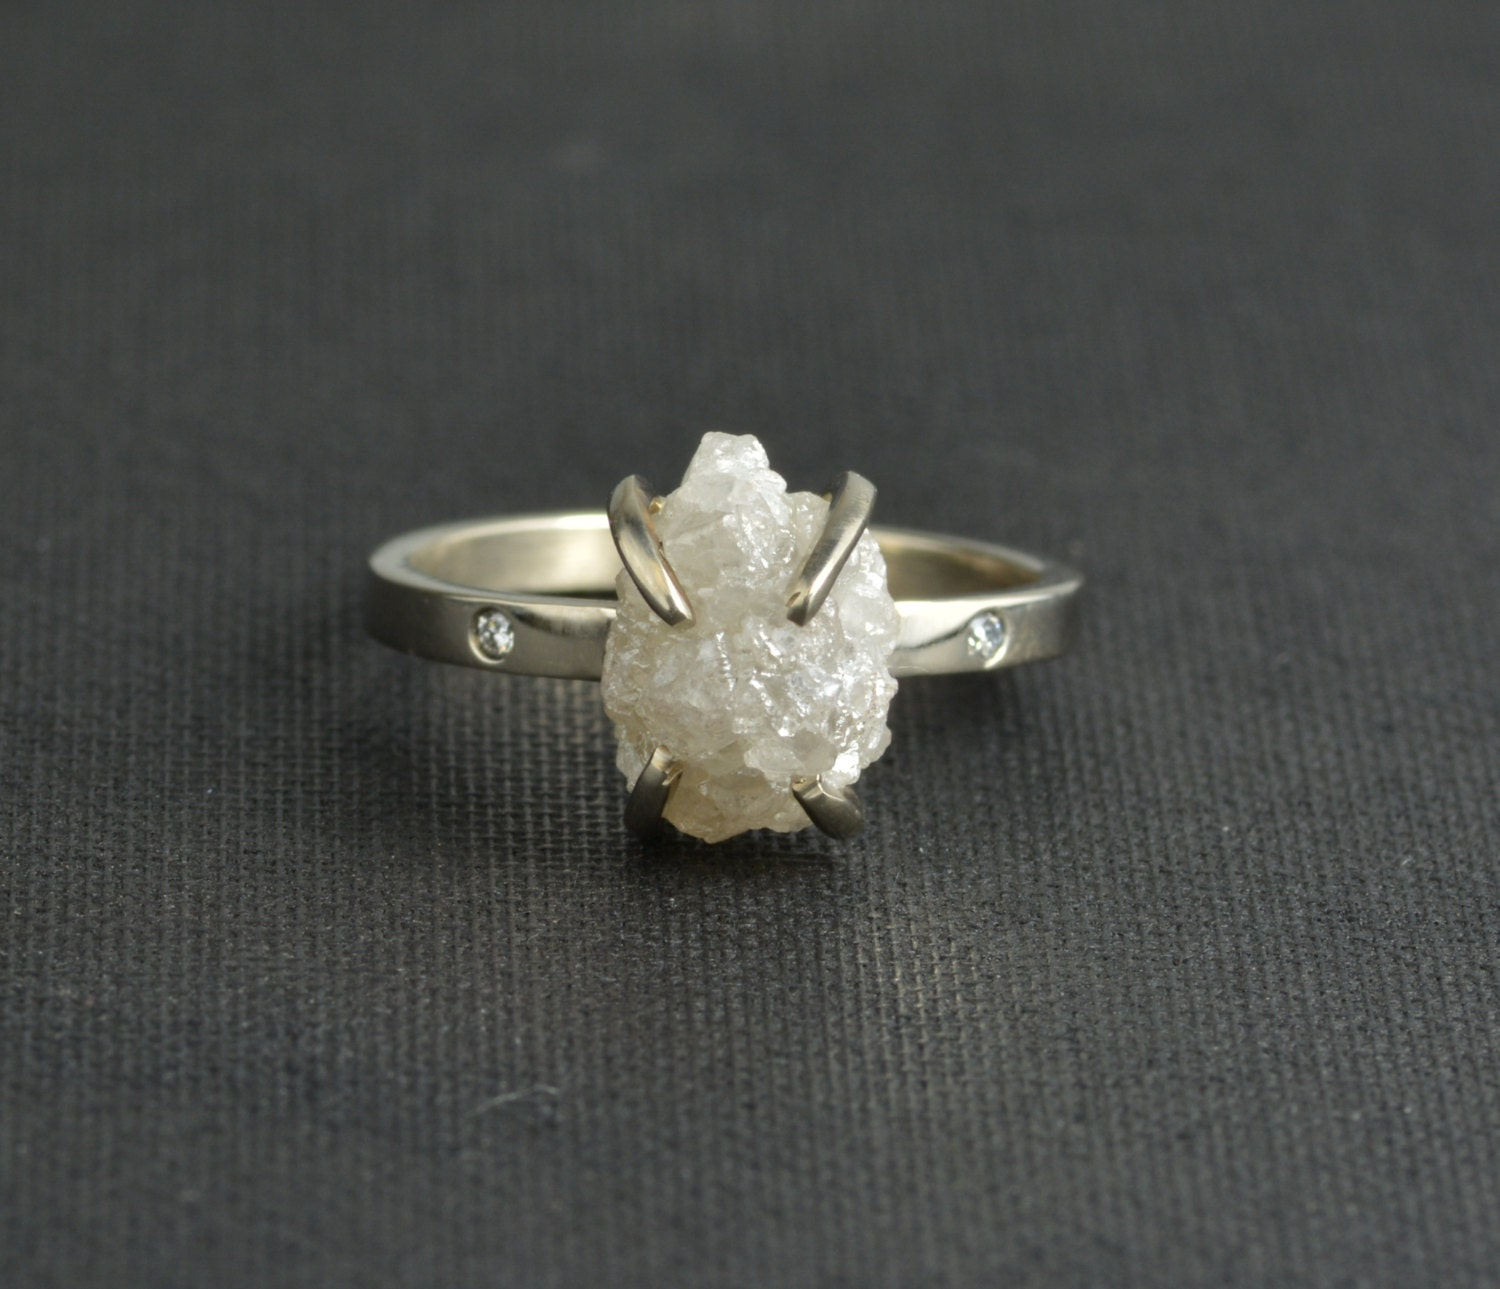 SALE Large 4 Carat Rough Diamond Ring By PointNoPointStudio